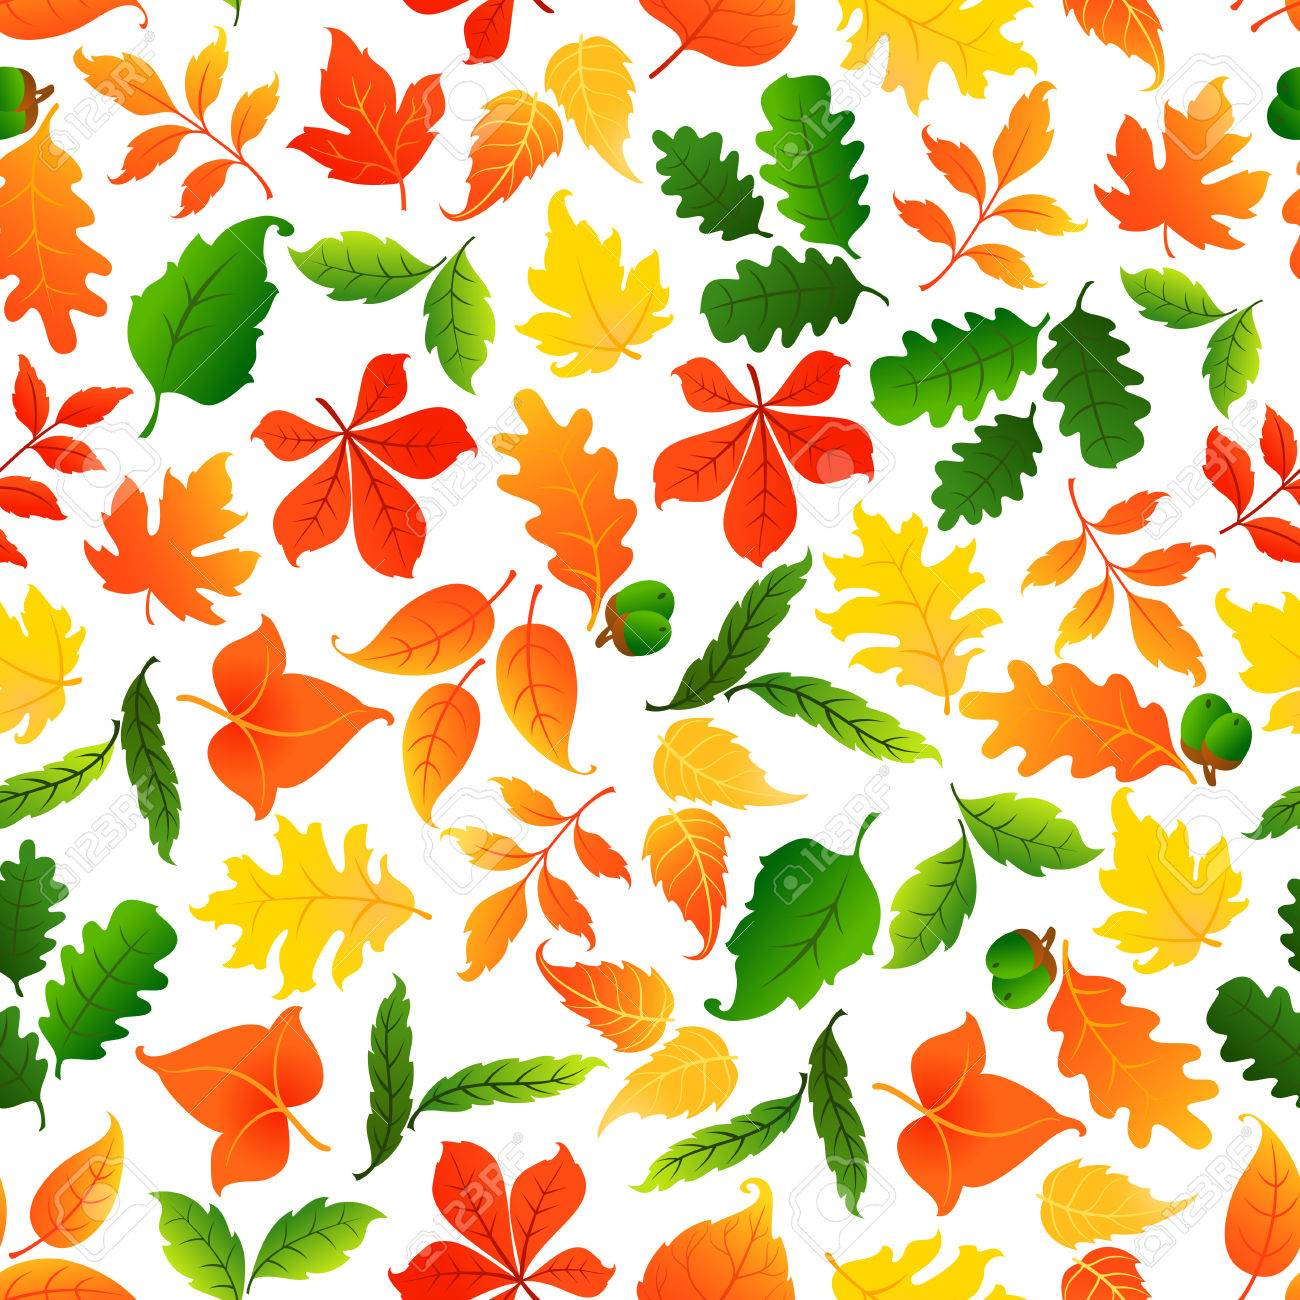 Colorful Leaves Seamless Pattern Background Autumn Foliage Wallpaper With Vector Elements Of Maple Birch